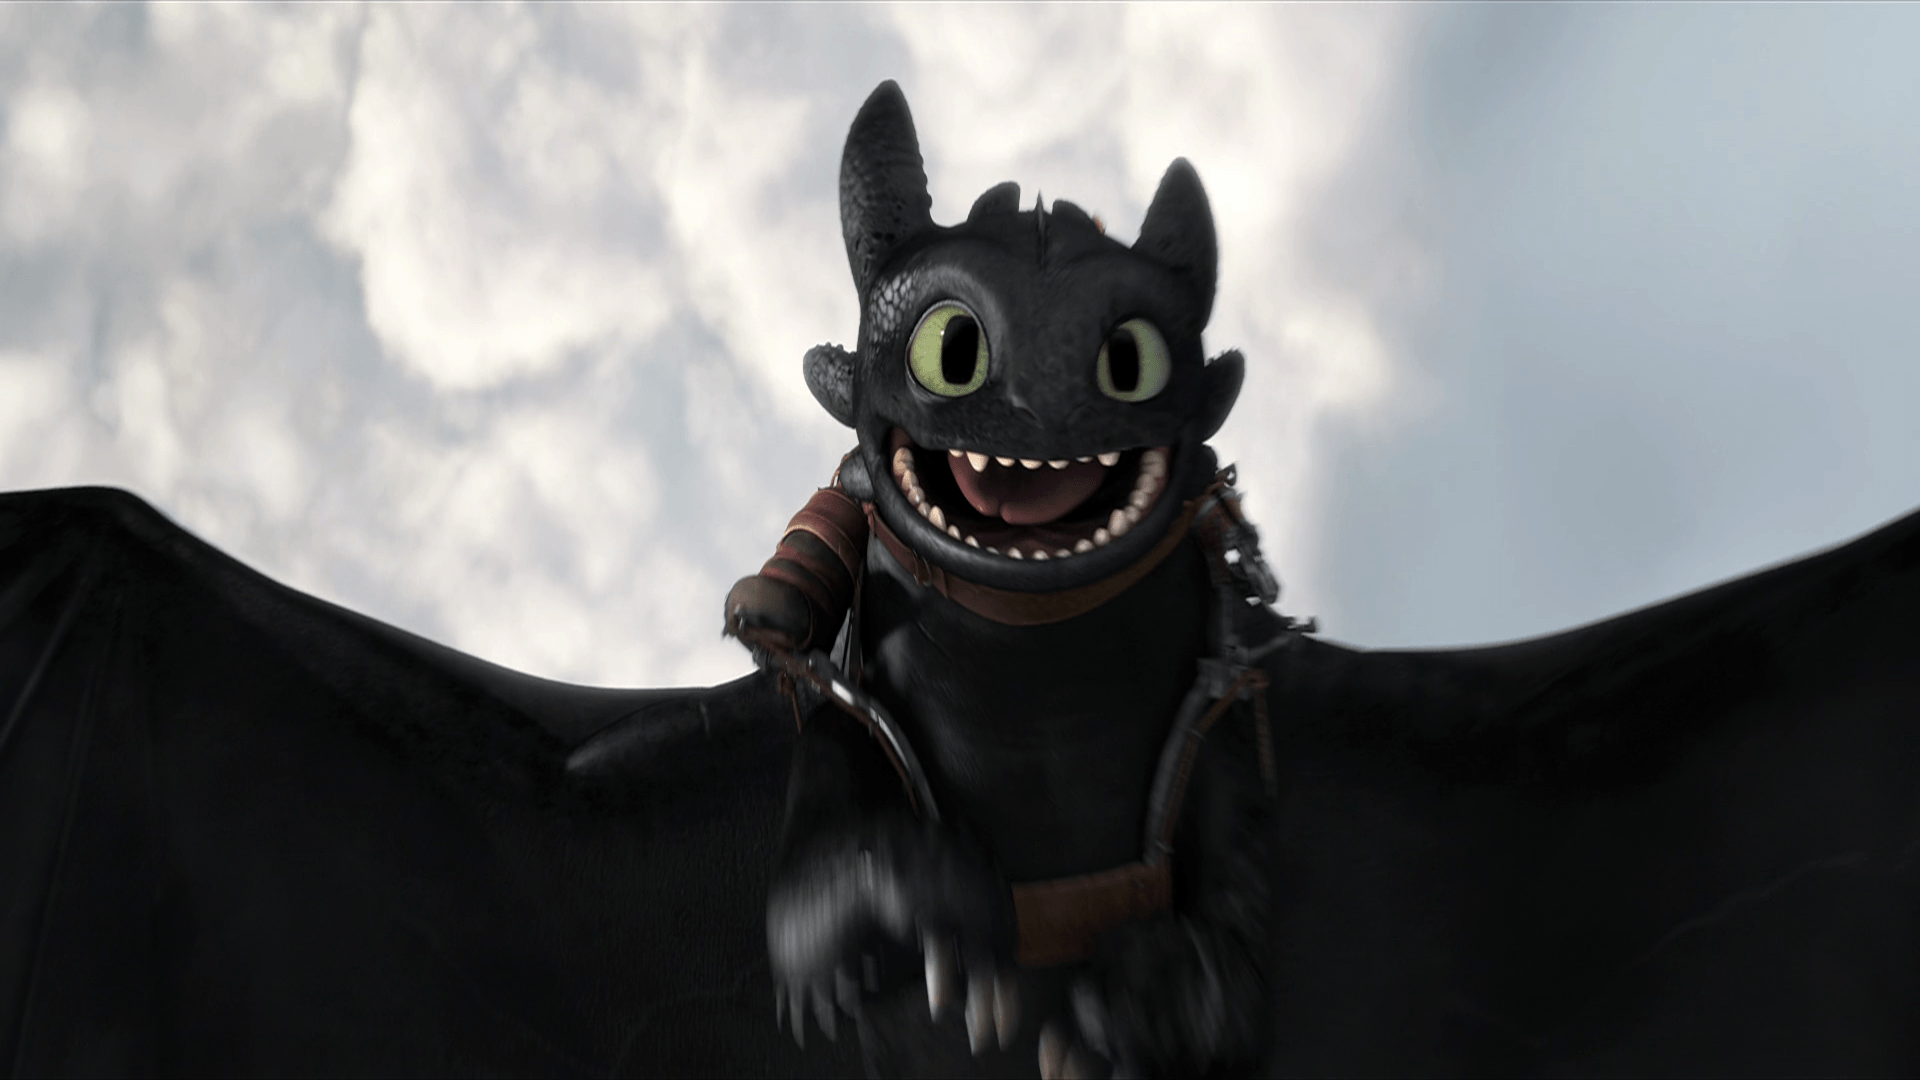 Toothless Dragon Wallpaper Cute